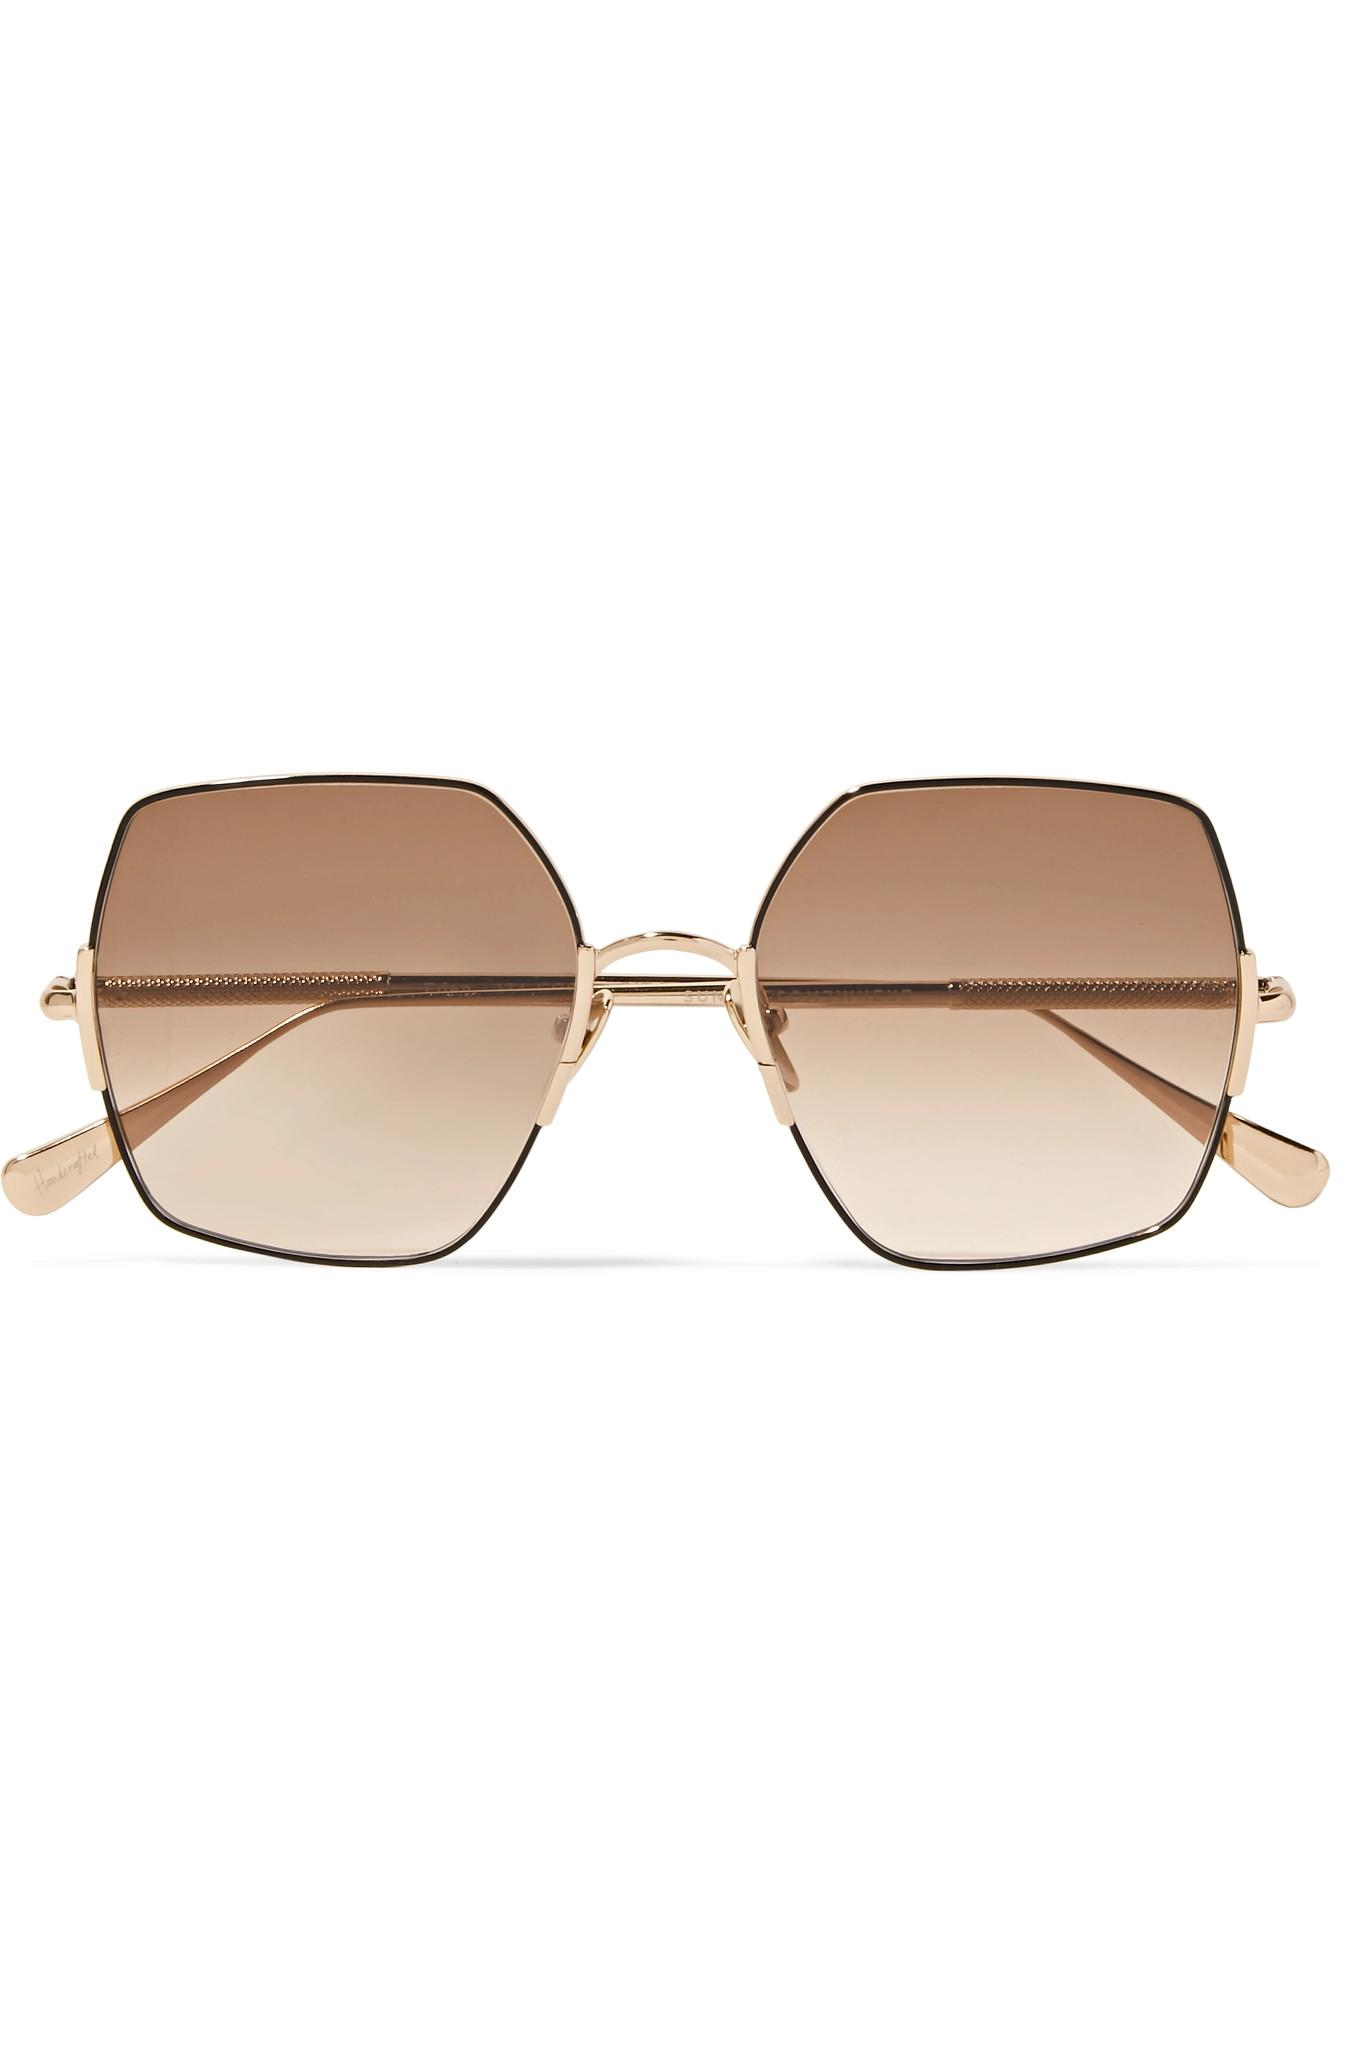 091676a9ac8 Lyst - Sunday Somewhere Eden Oversized Square-frame Gold-tone ...